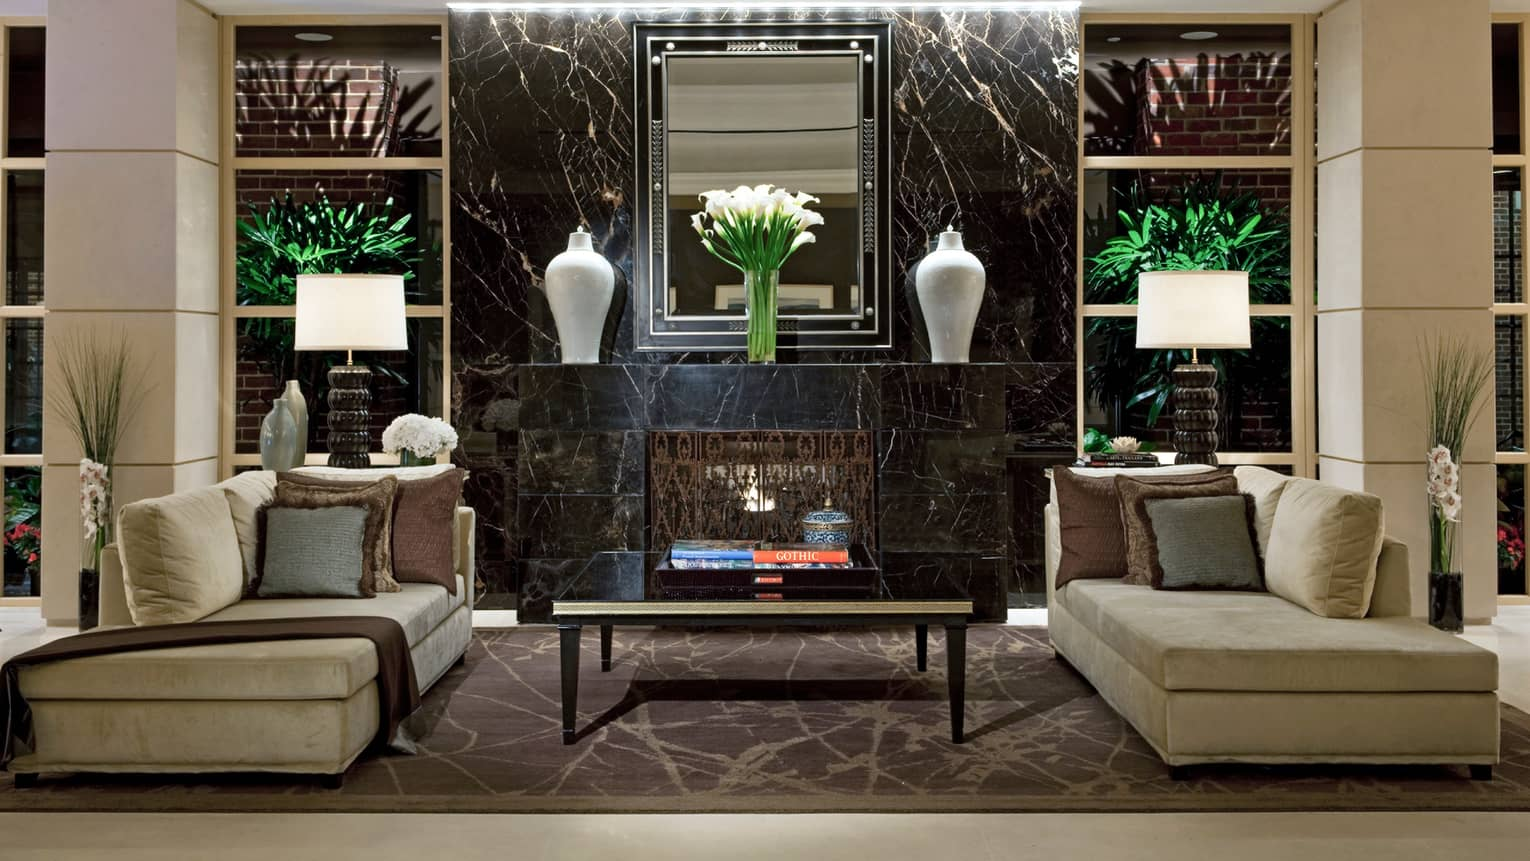 Lobby with plush chaise sofas, pillows by black marble fireplace mantle with large white vases, fresh flowers